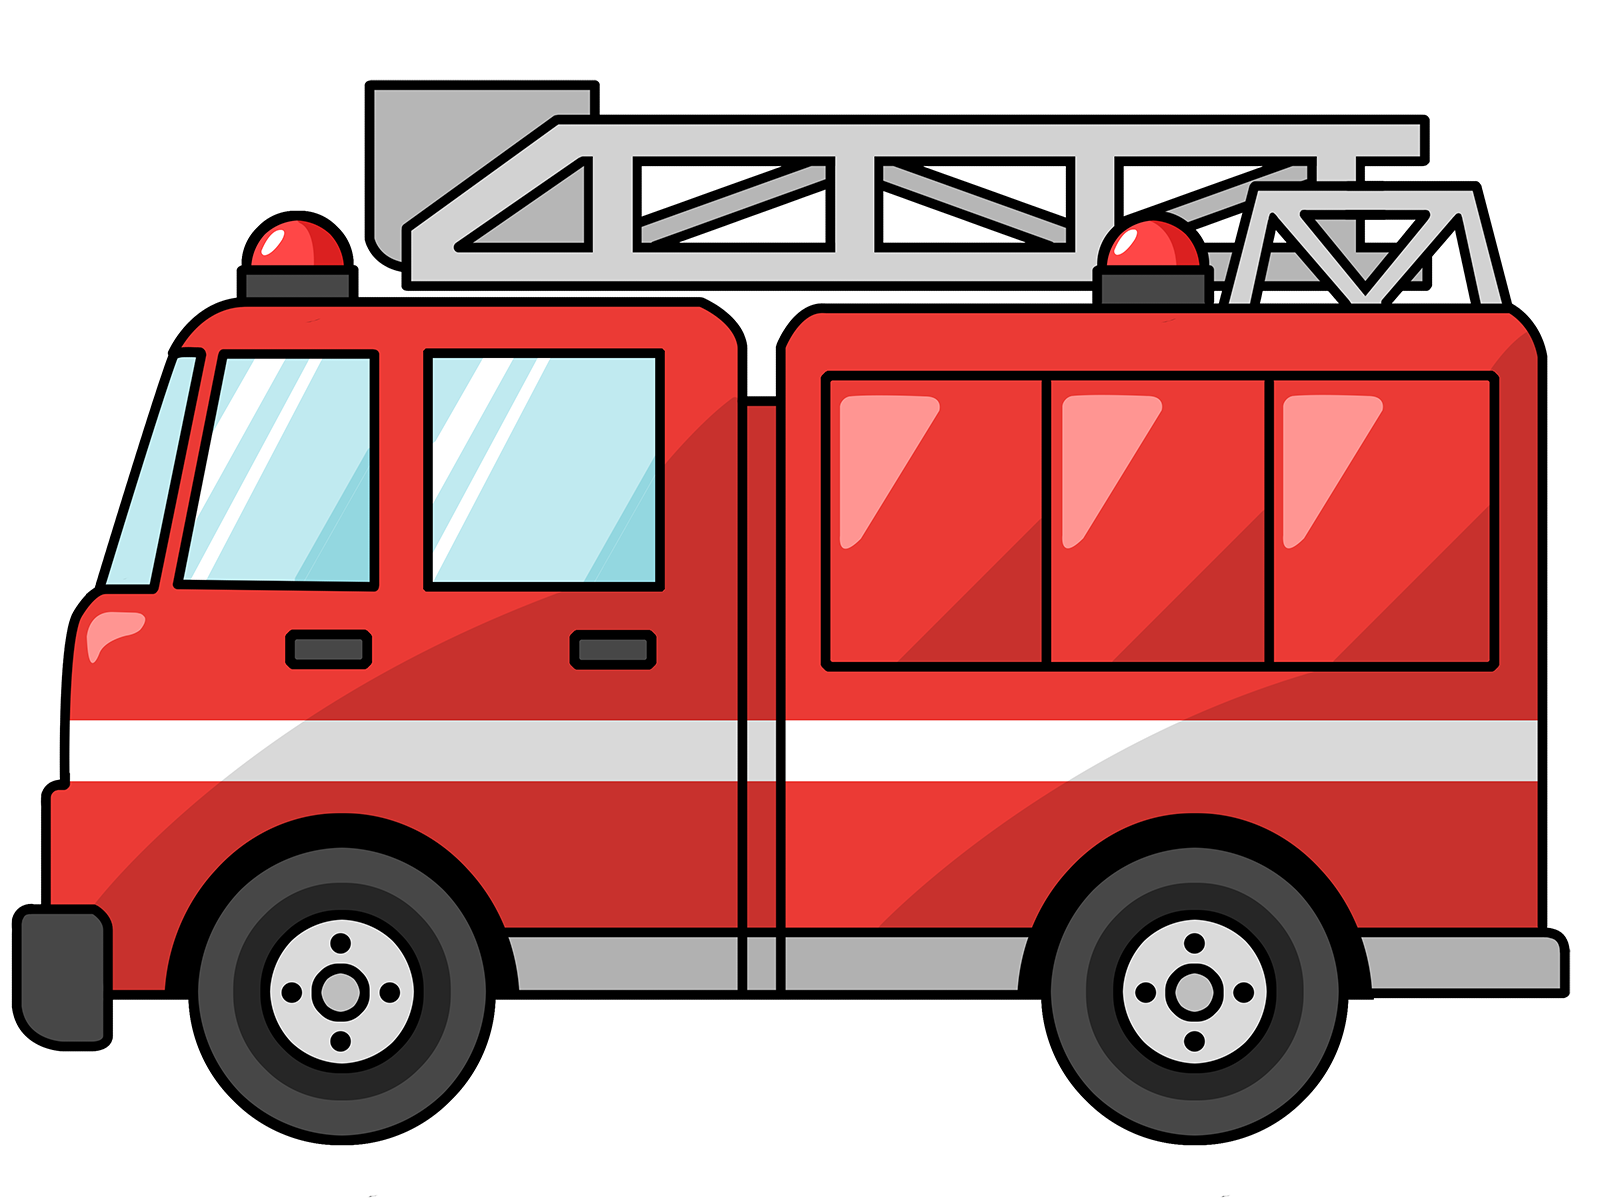 Fire Station Clip Art - Clipart library